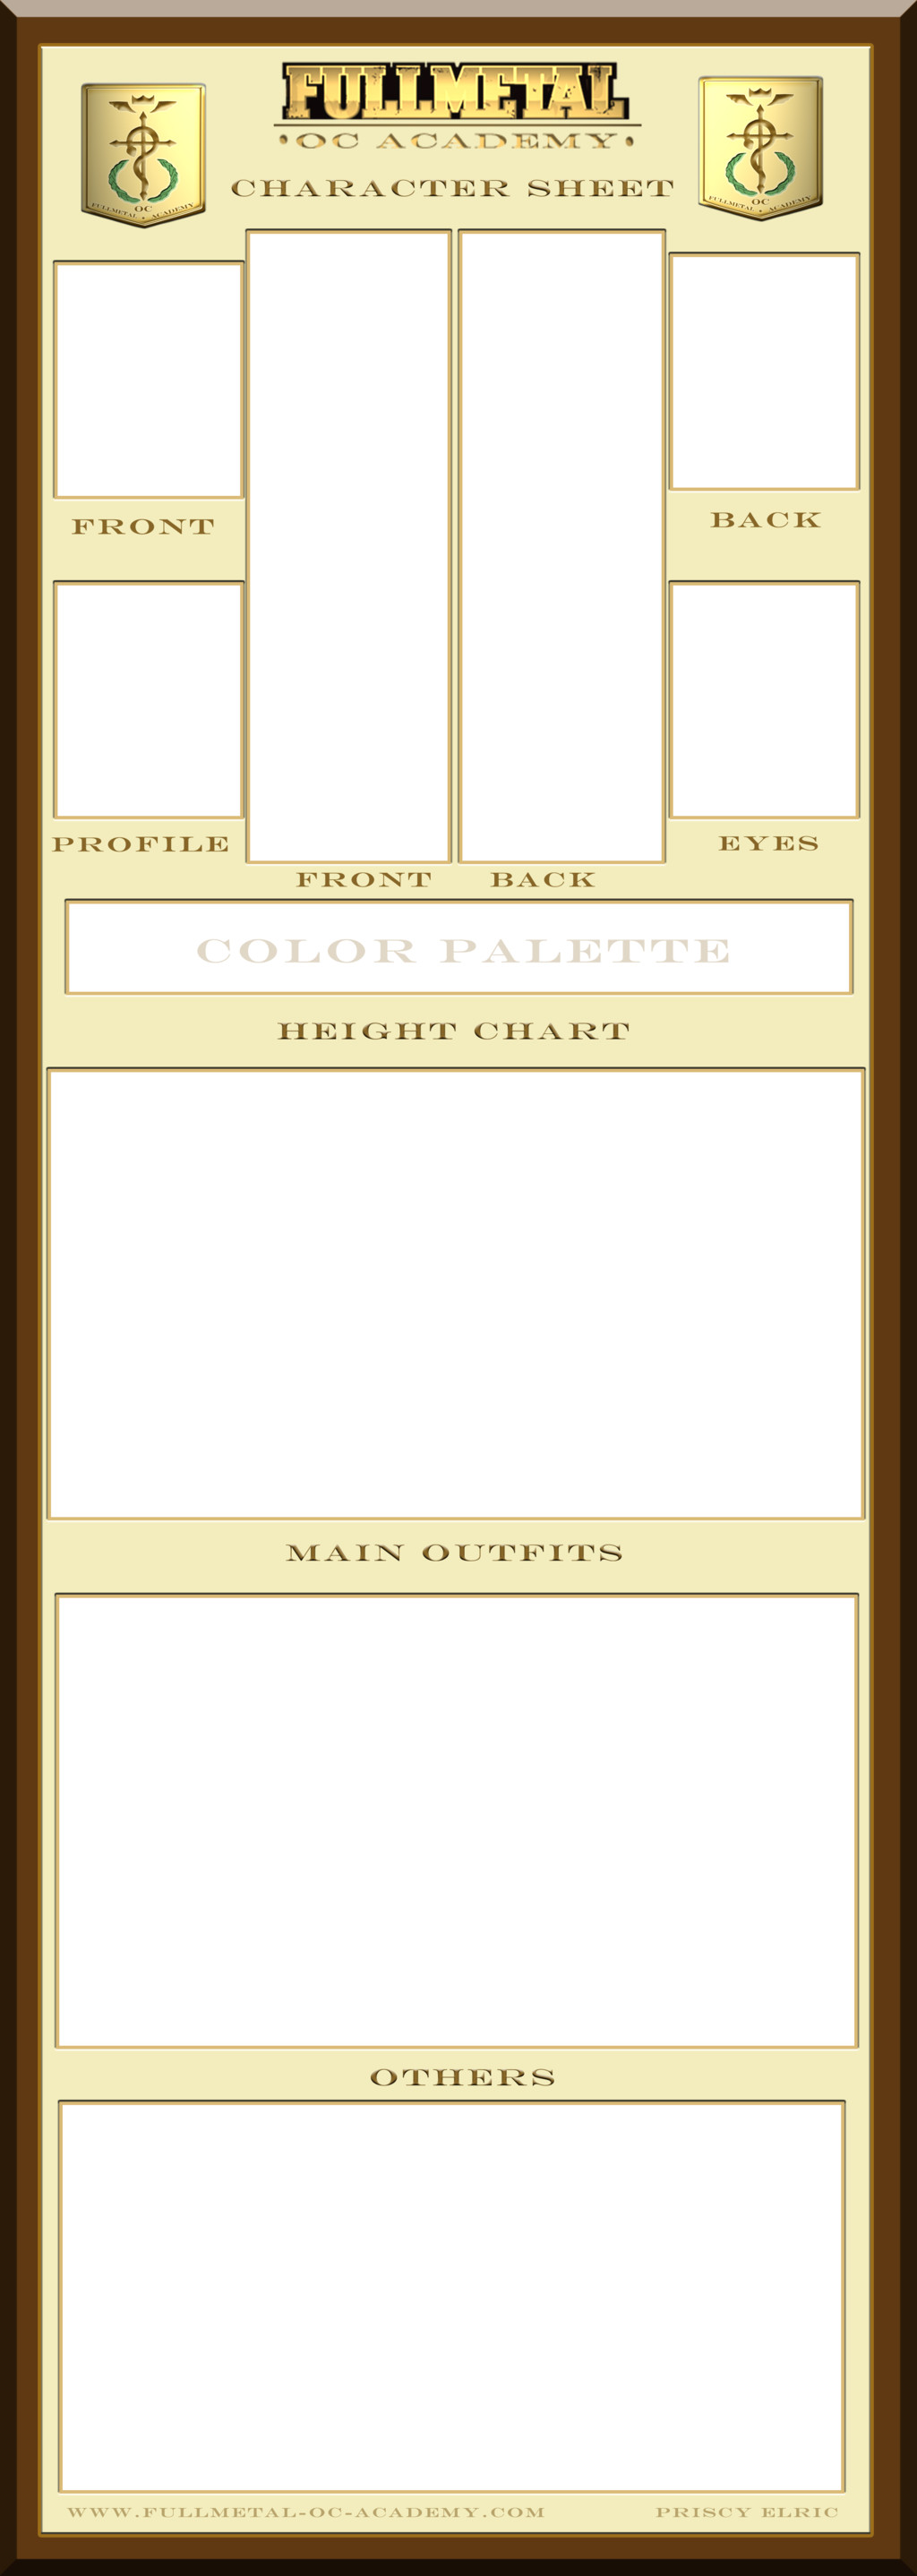 Oc Reference Sheet Template Fullmetal Oc Academy Character Sheet Template by Bitter